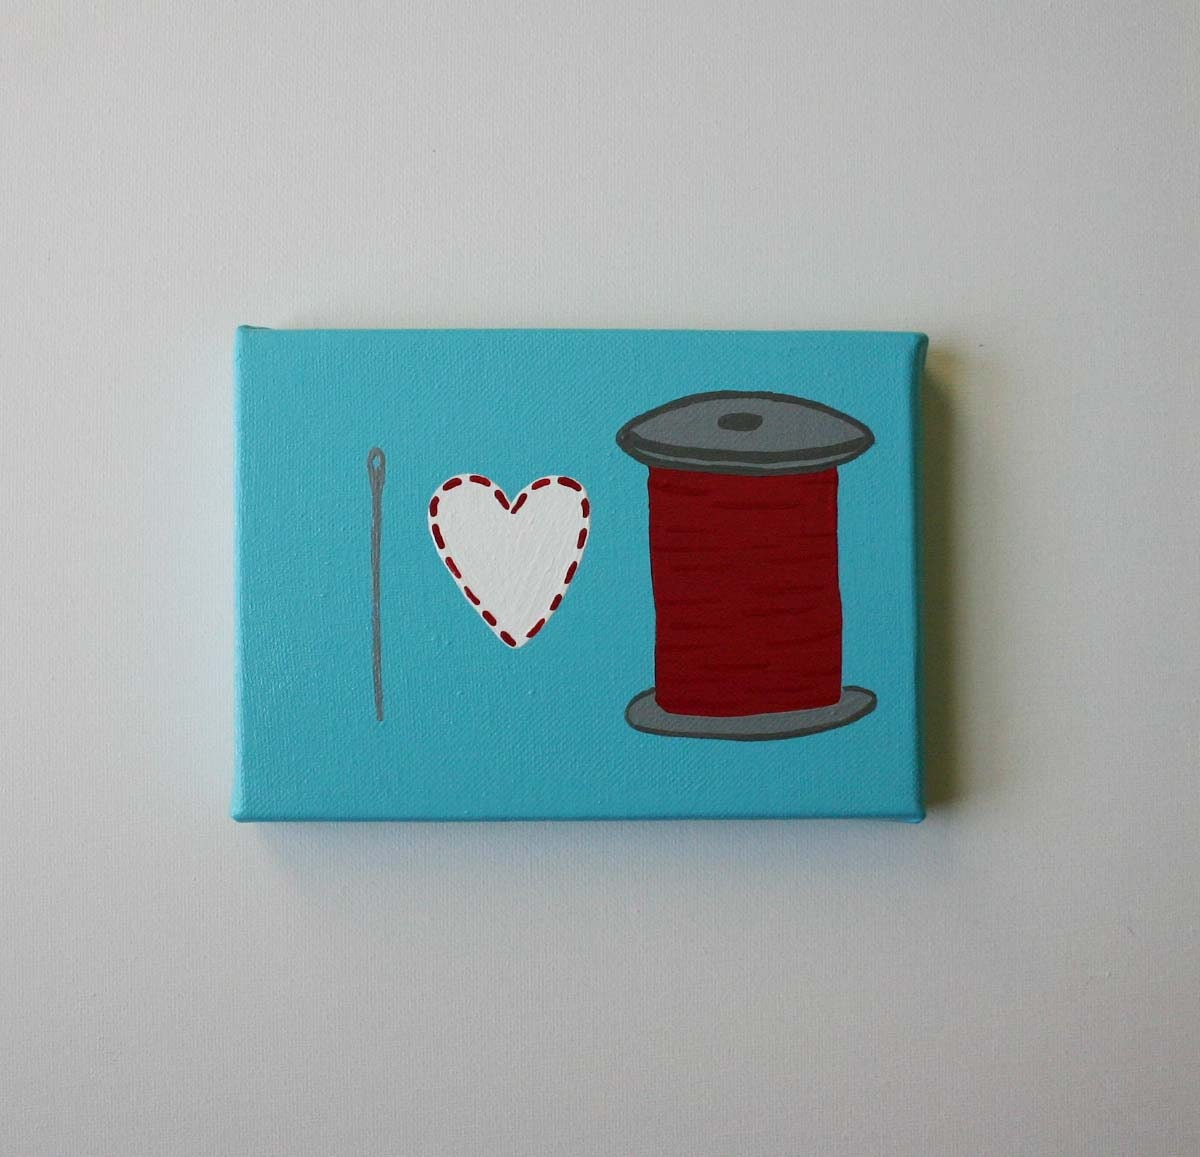 Affordable Original Painting, Wall Art, Home Decor - I heart thread (5 x 7 Canvas)